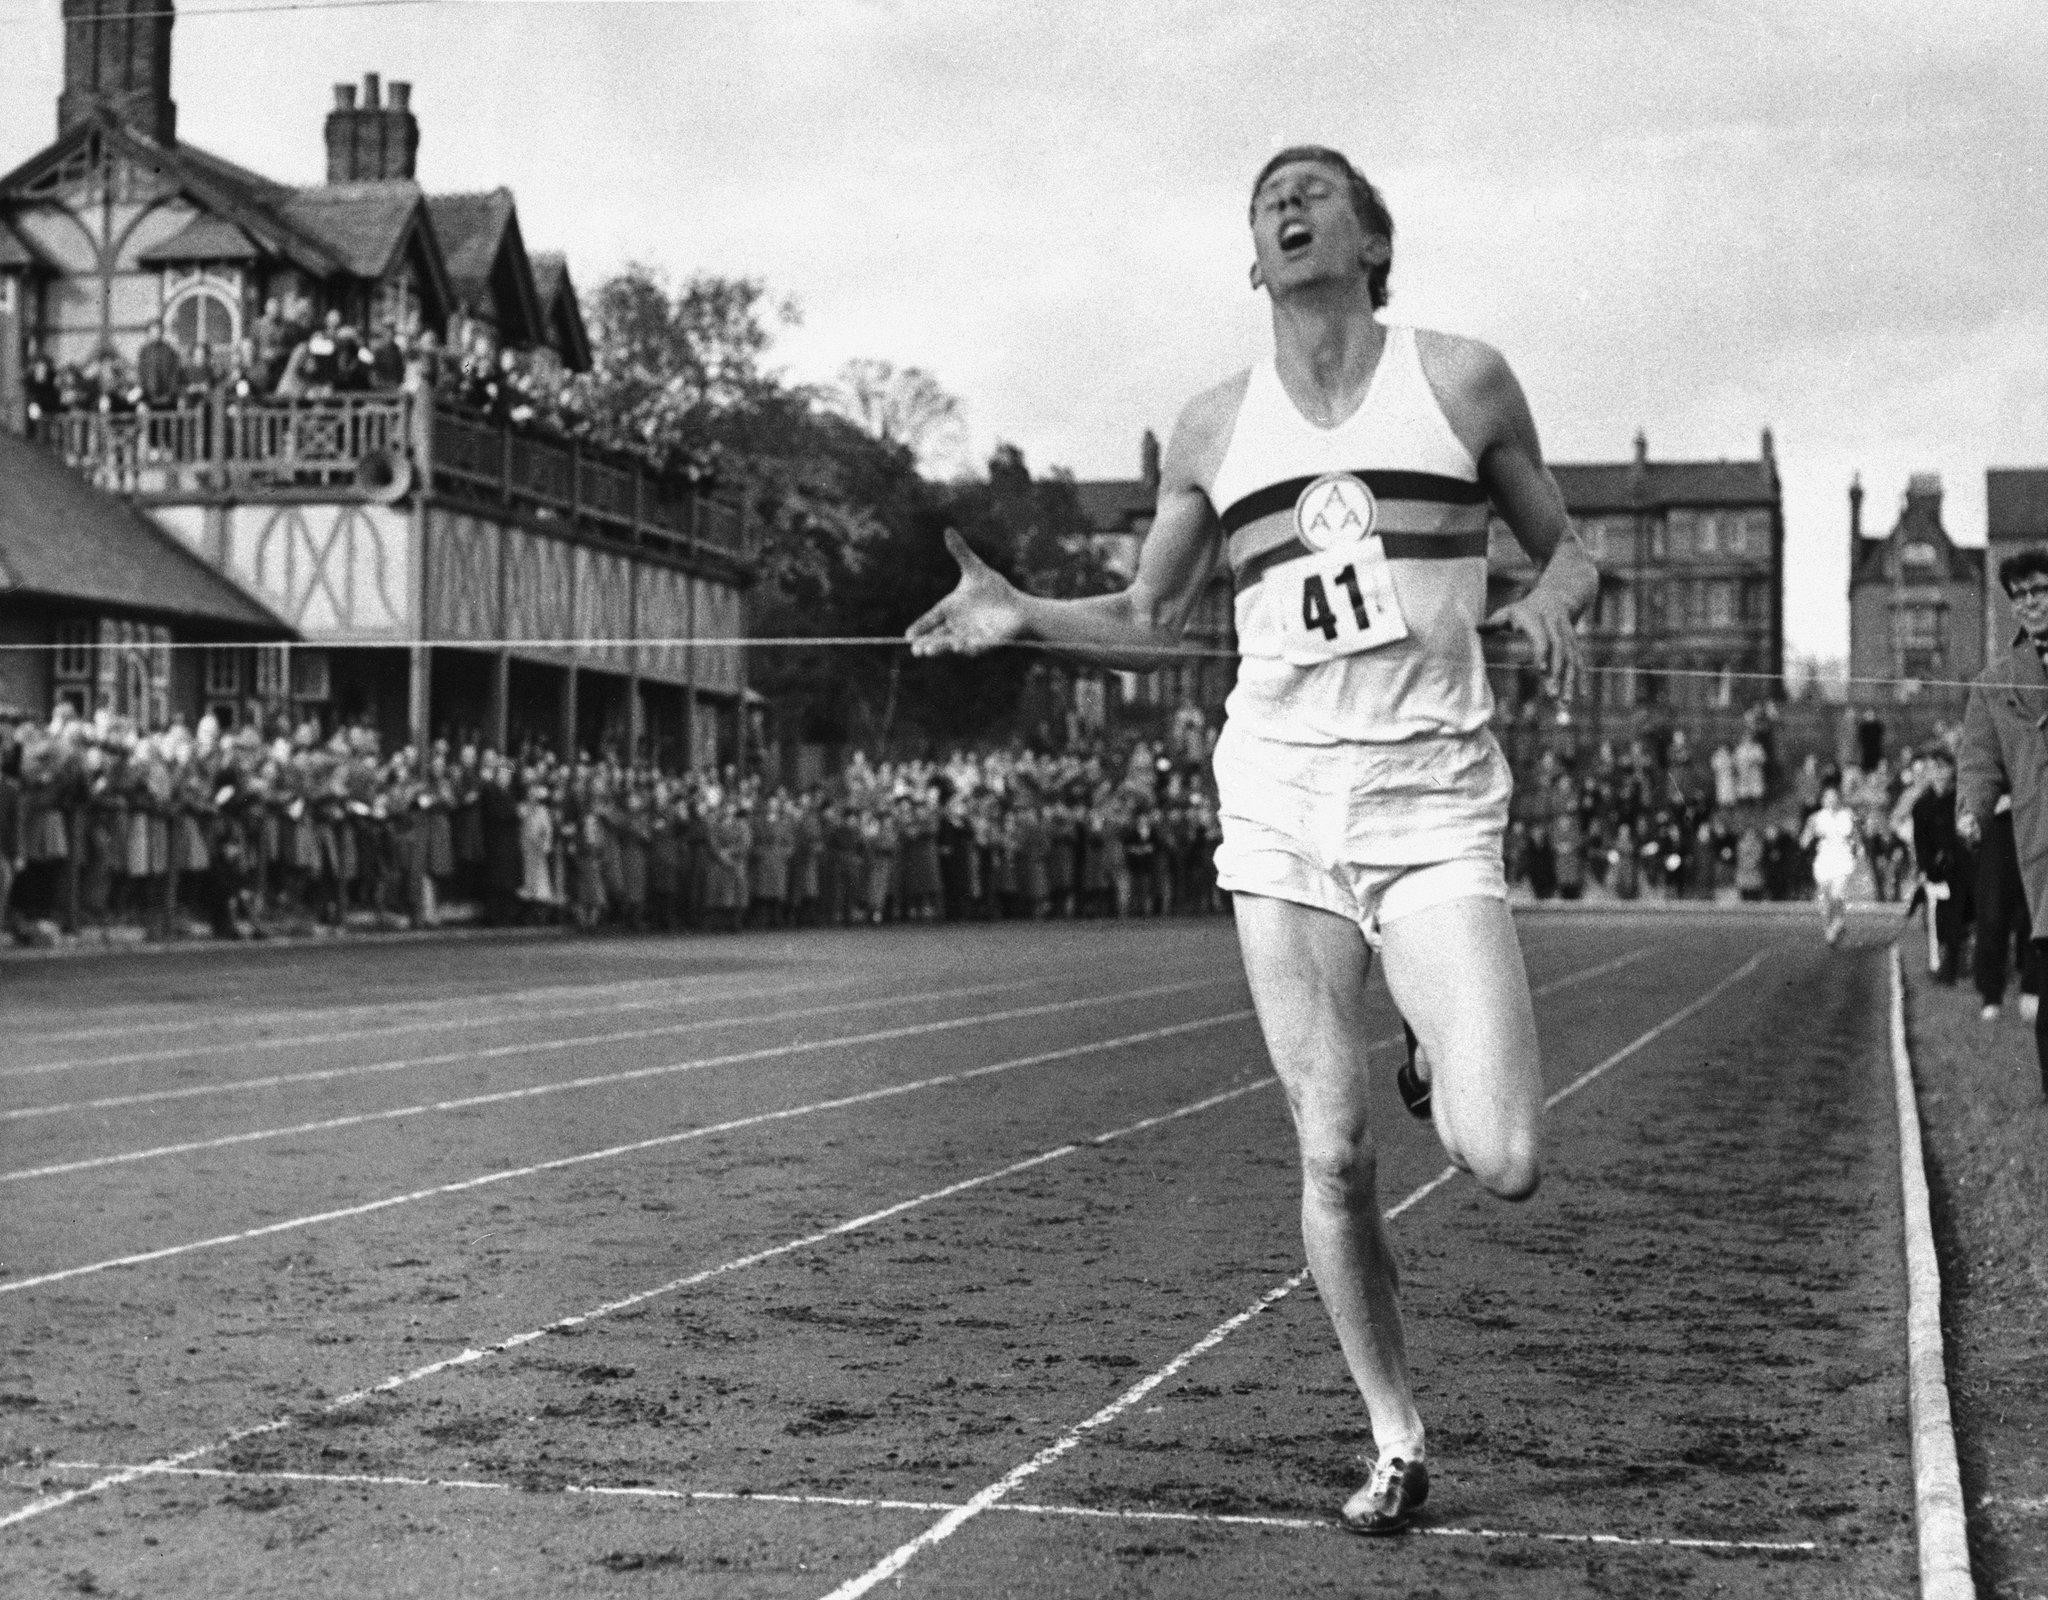 Roger Bannister's achievement transcended sport, let alone athletics says Seb Coe